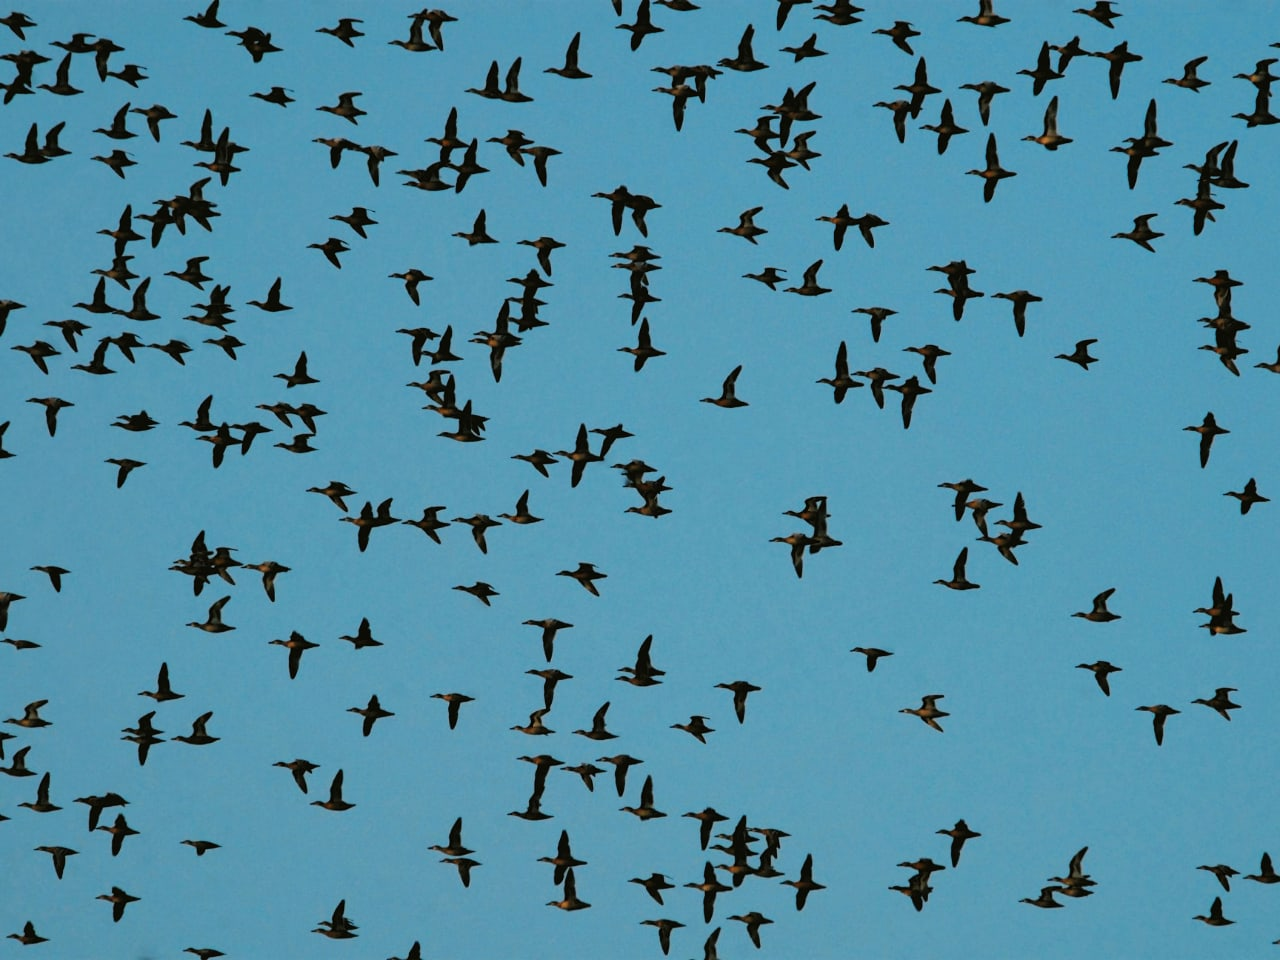 Fall Migration An Exciting Time For Birds in Crete